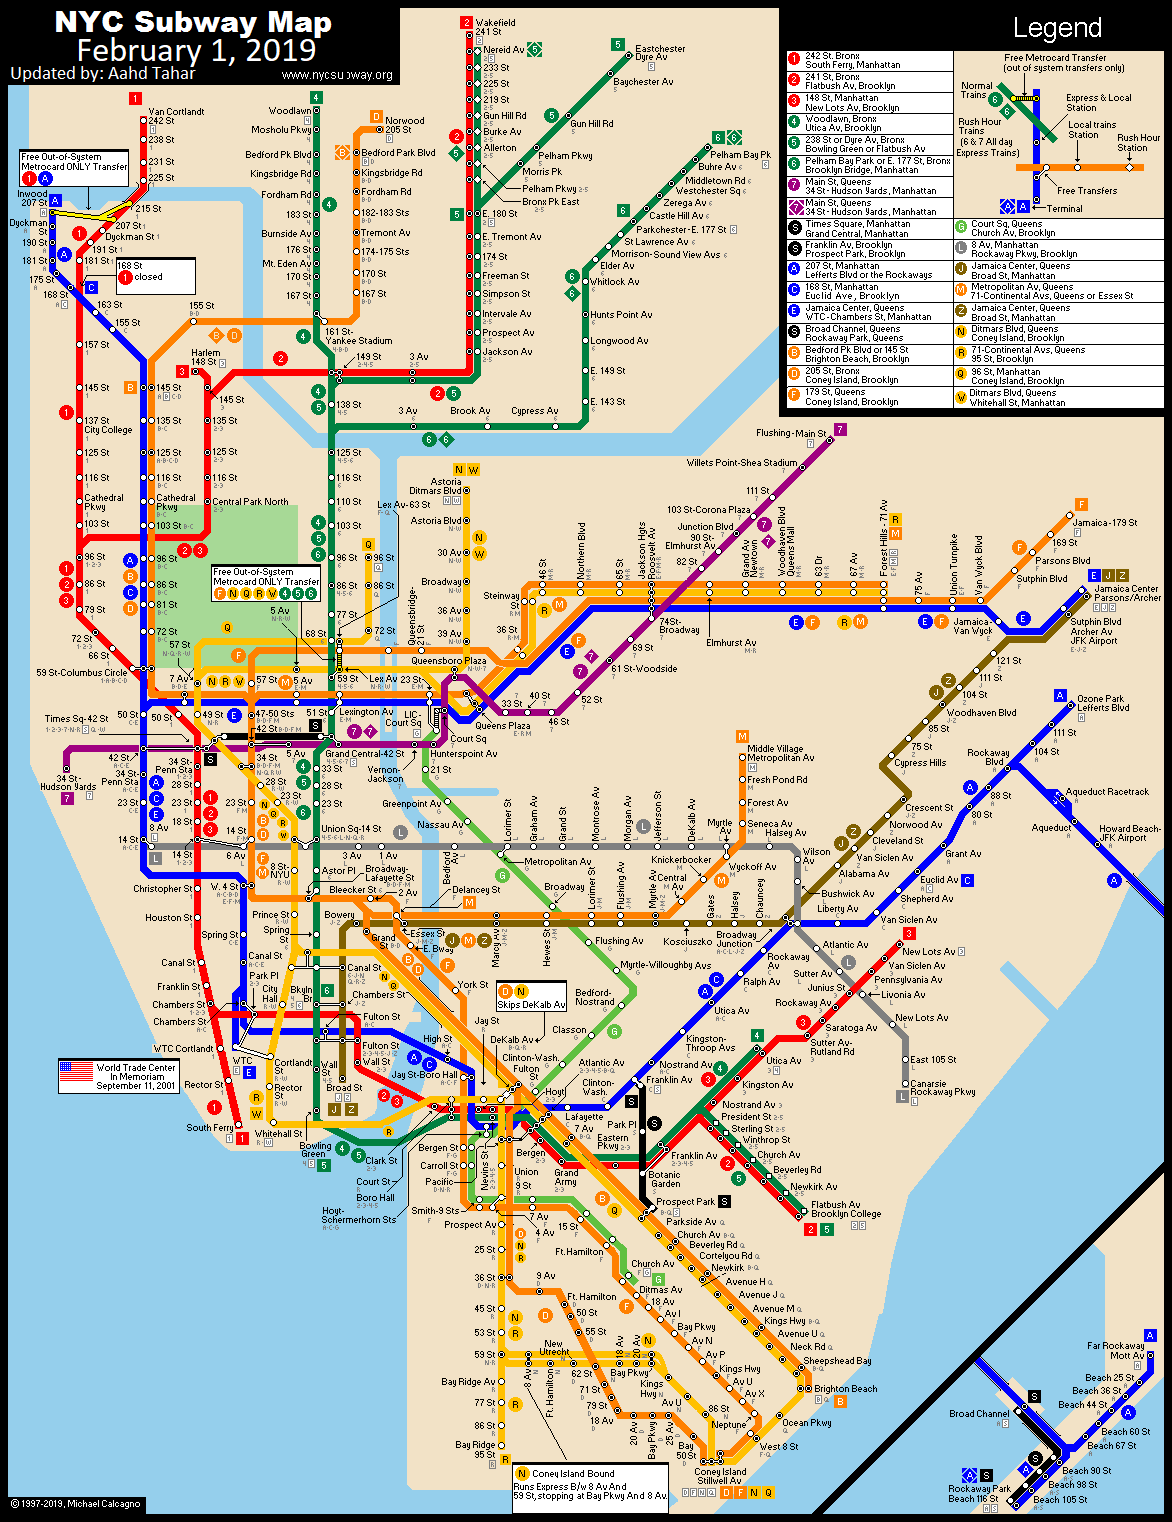 Subway Map Javascript.Www Nycsubway Org New York City Subway Route Map By Michael Calcagno